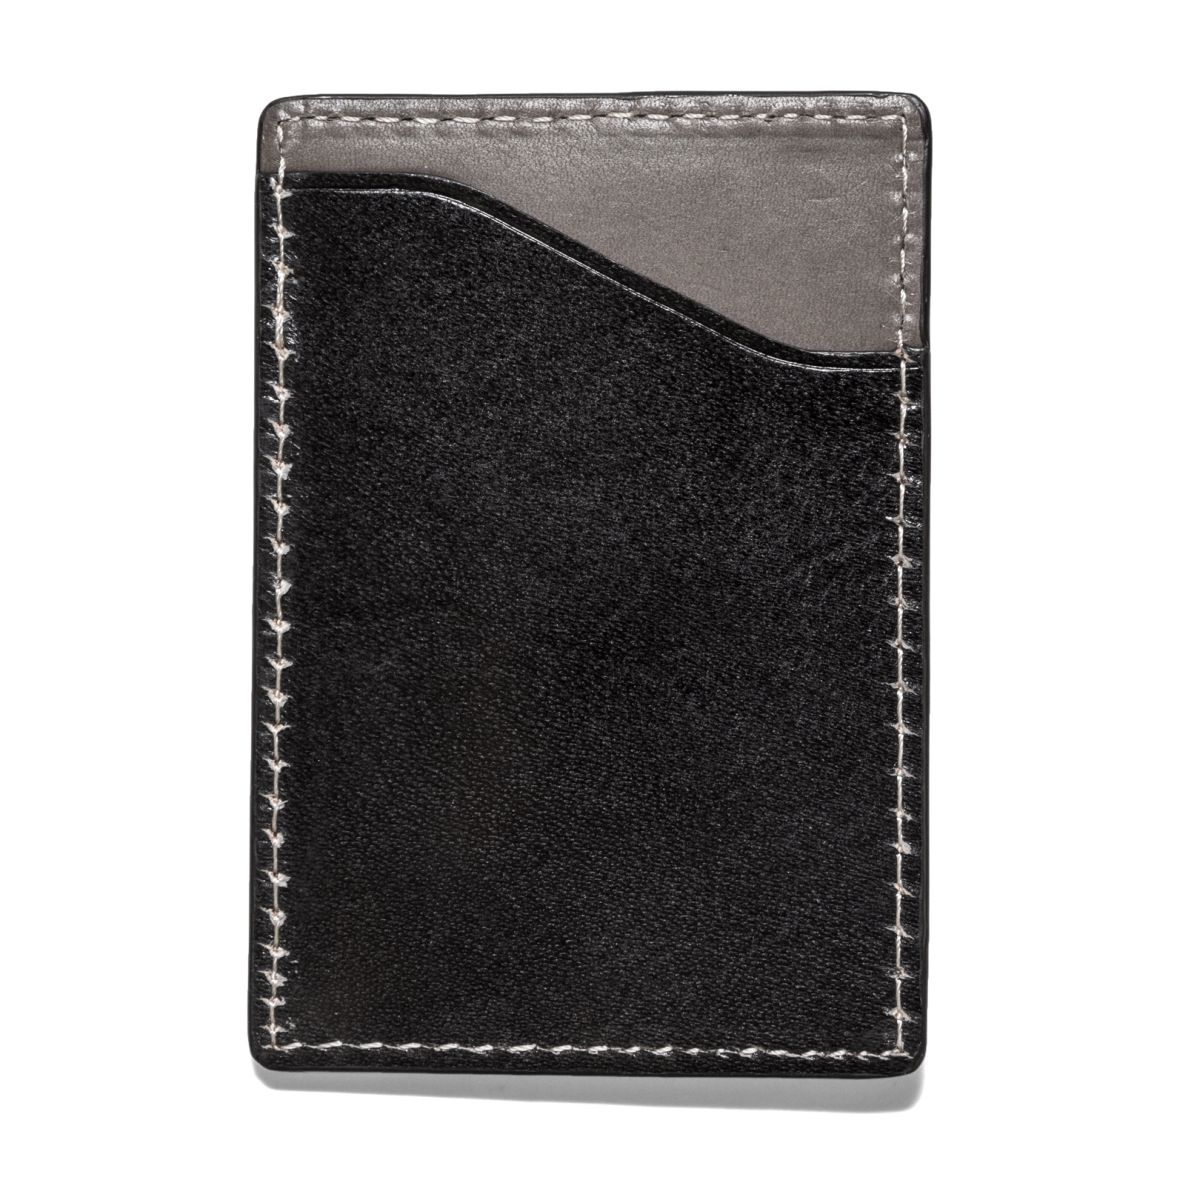 FLAT STASH Leather Wallet - Black